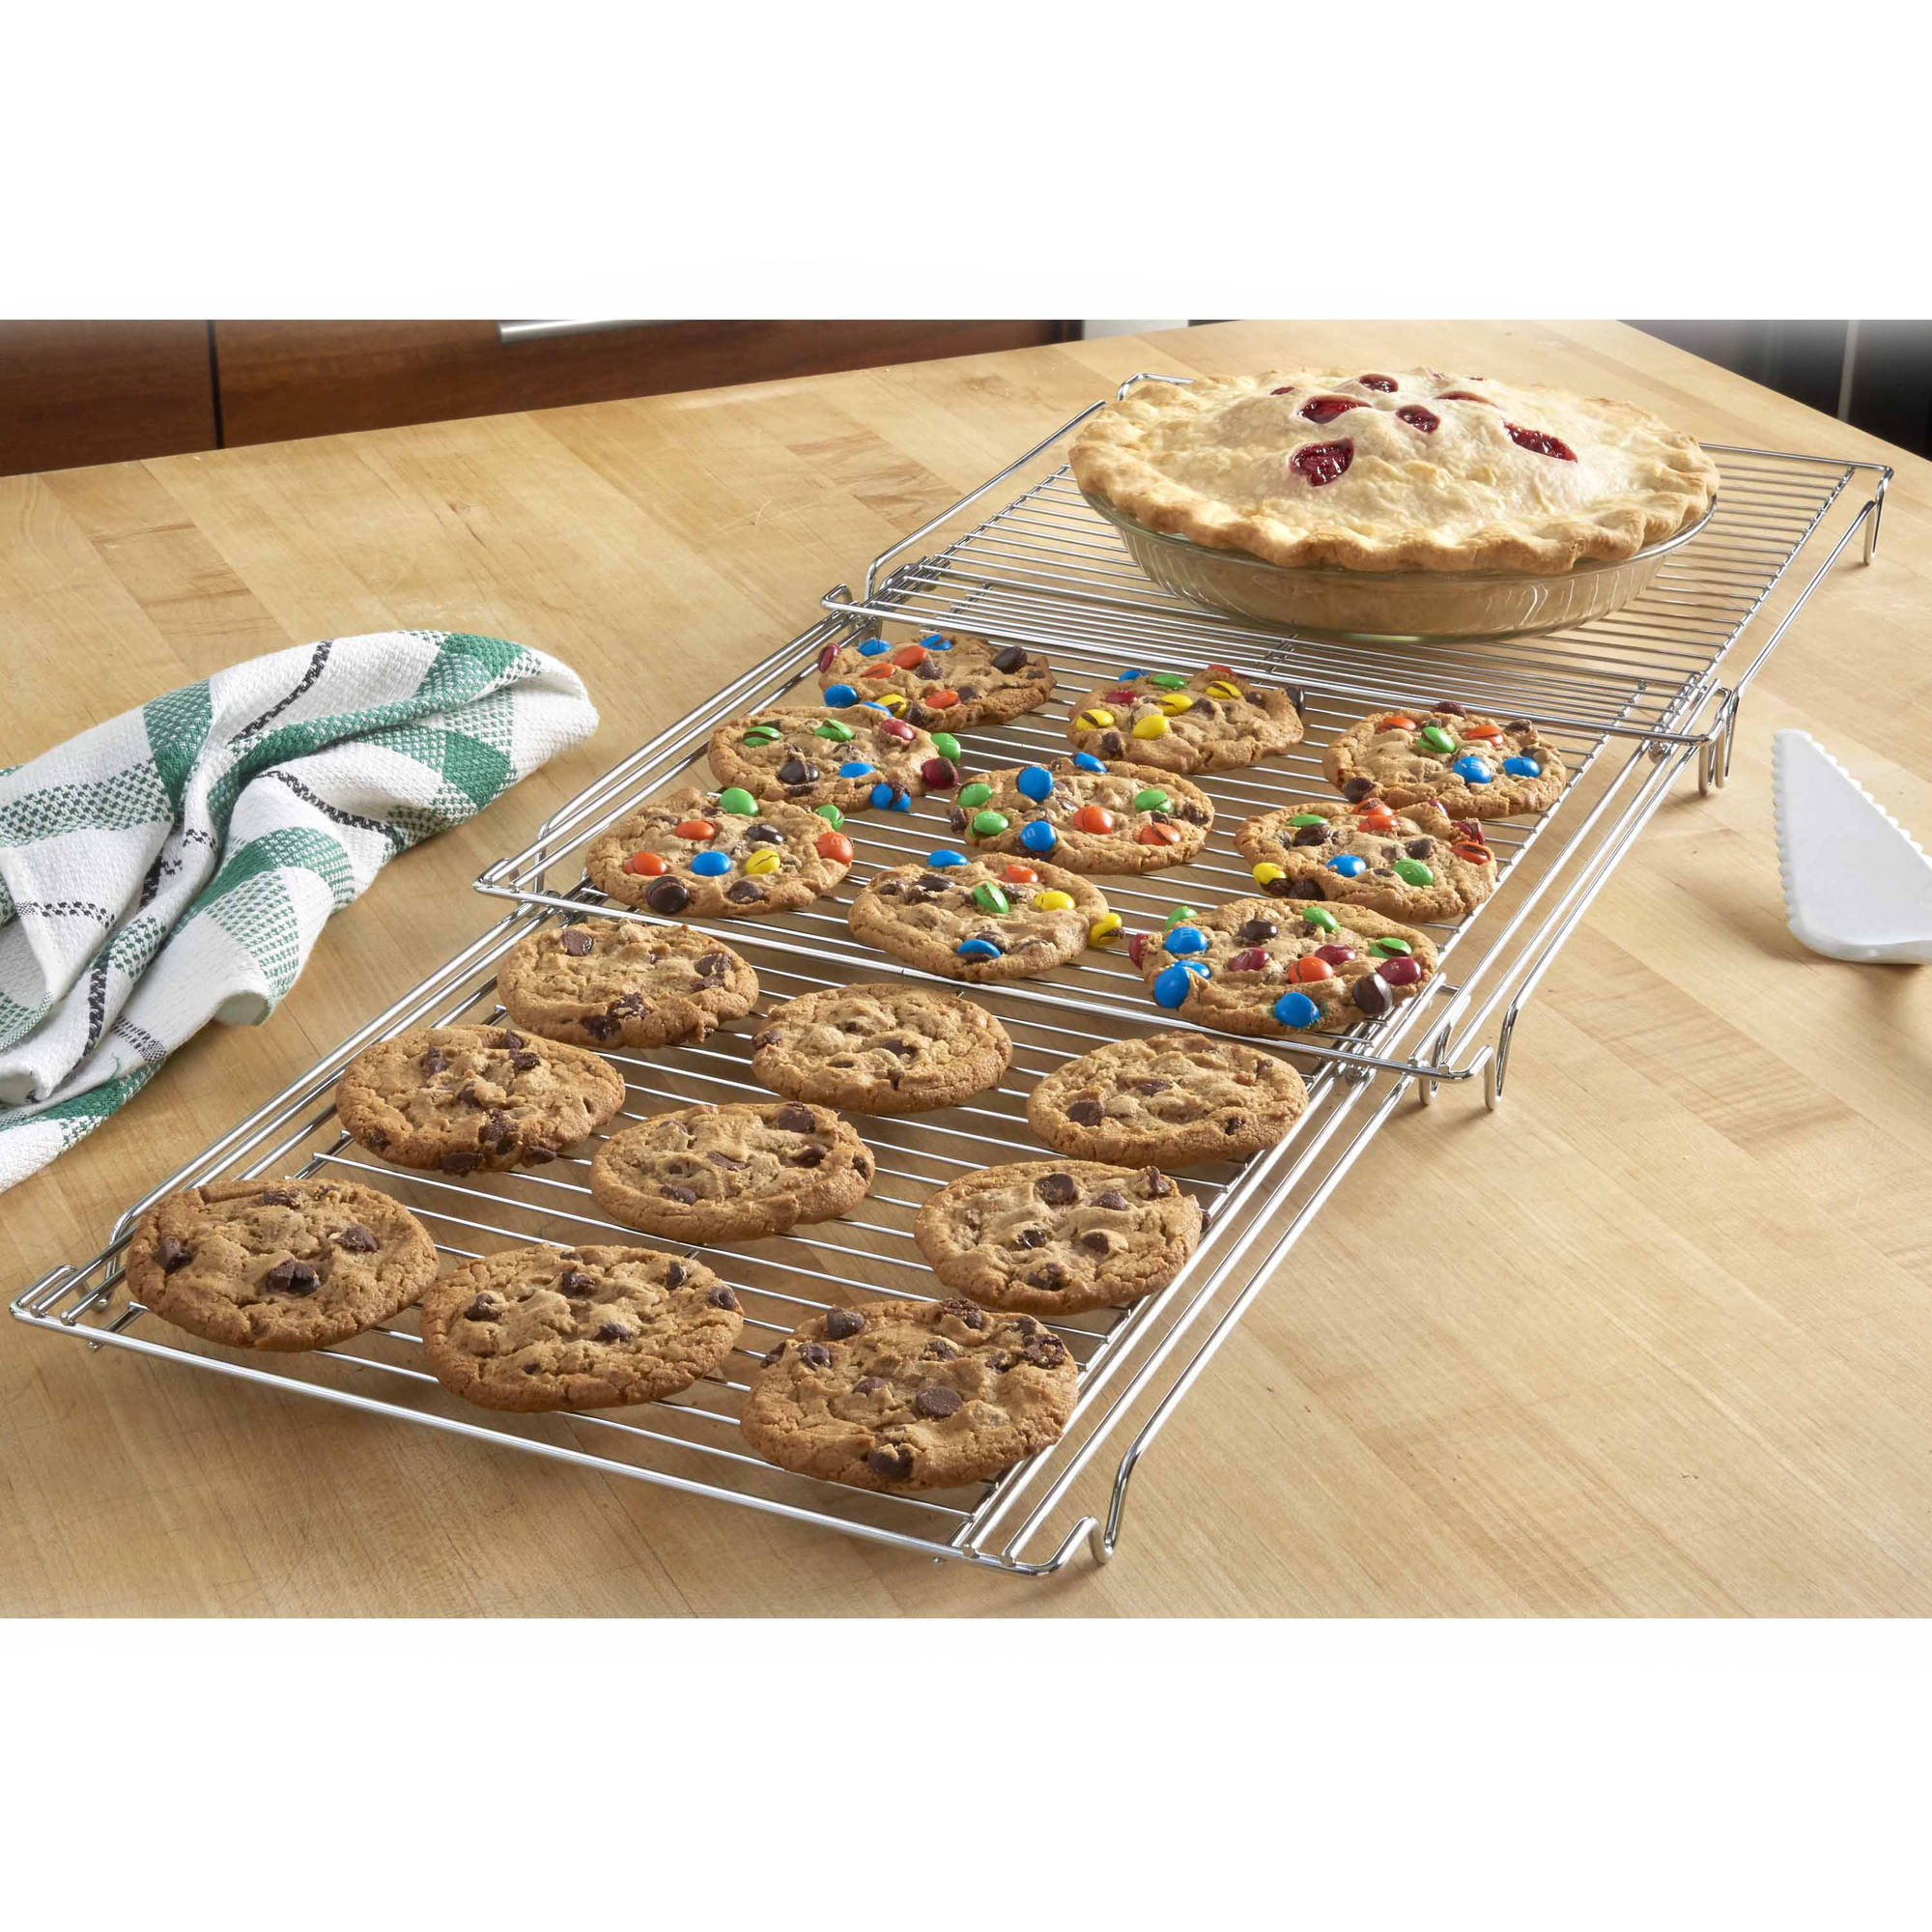 Betty Crocker Expandable Cooling Rack